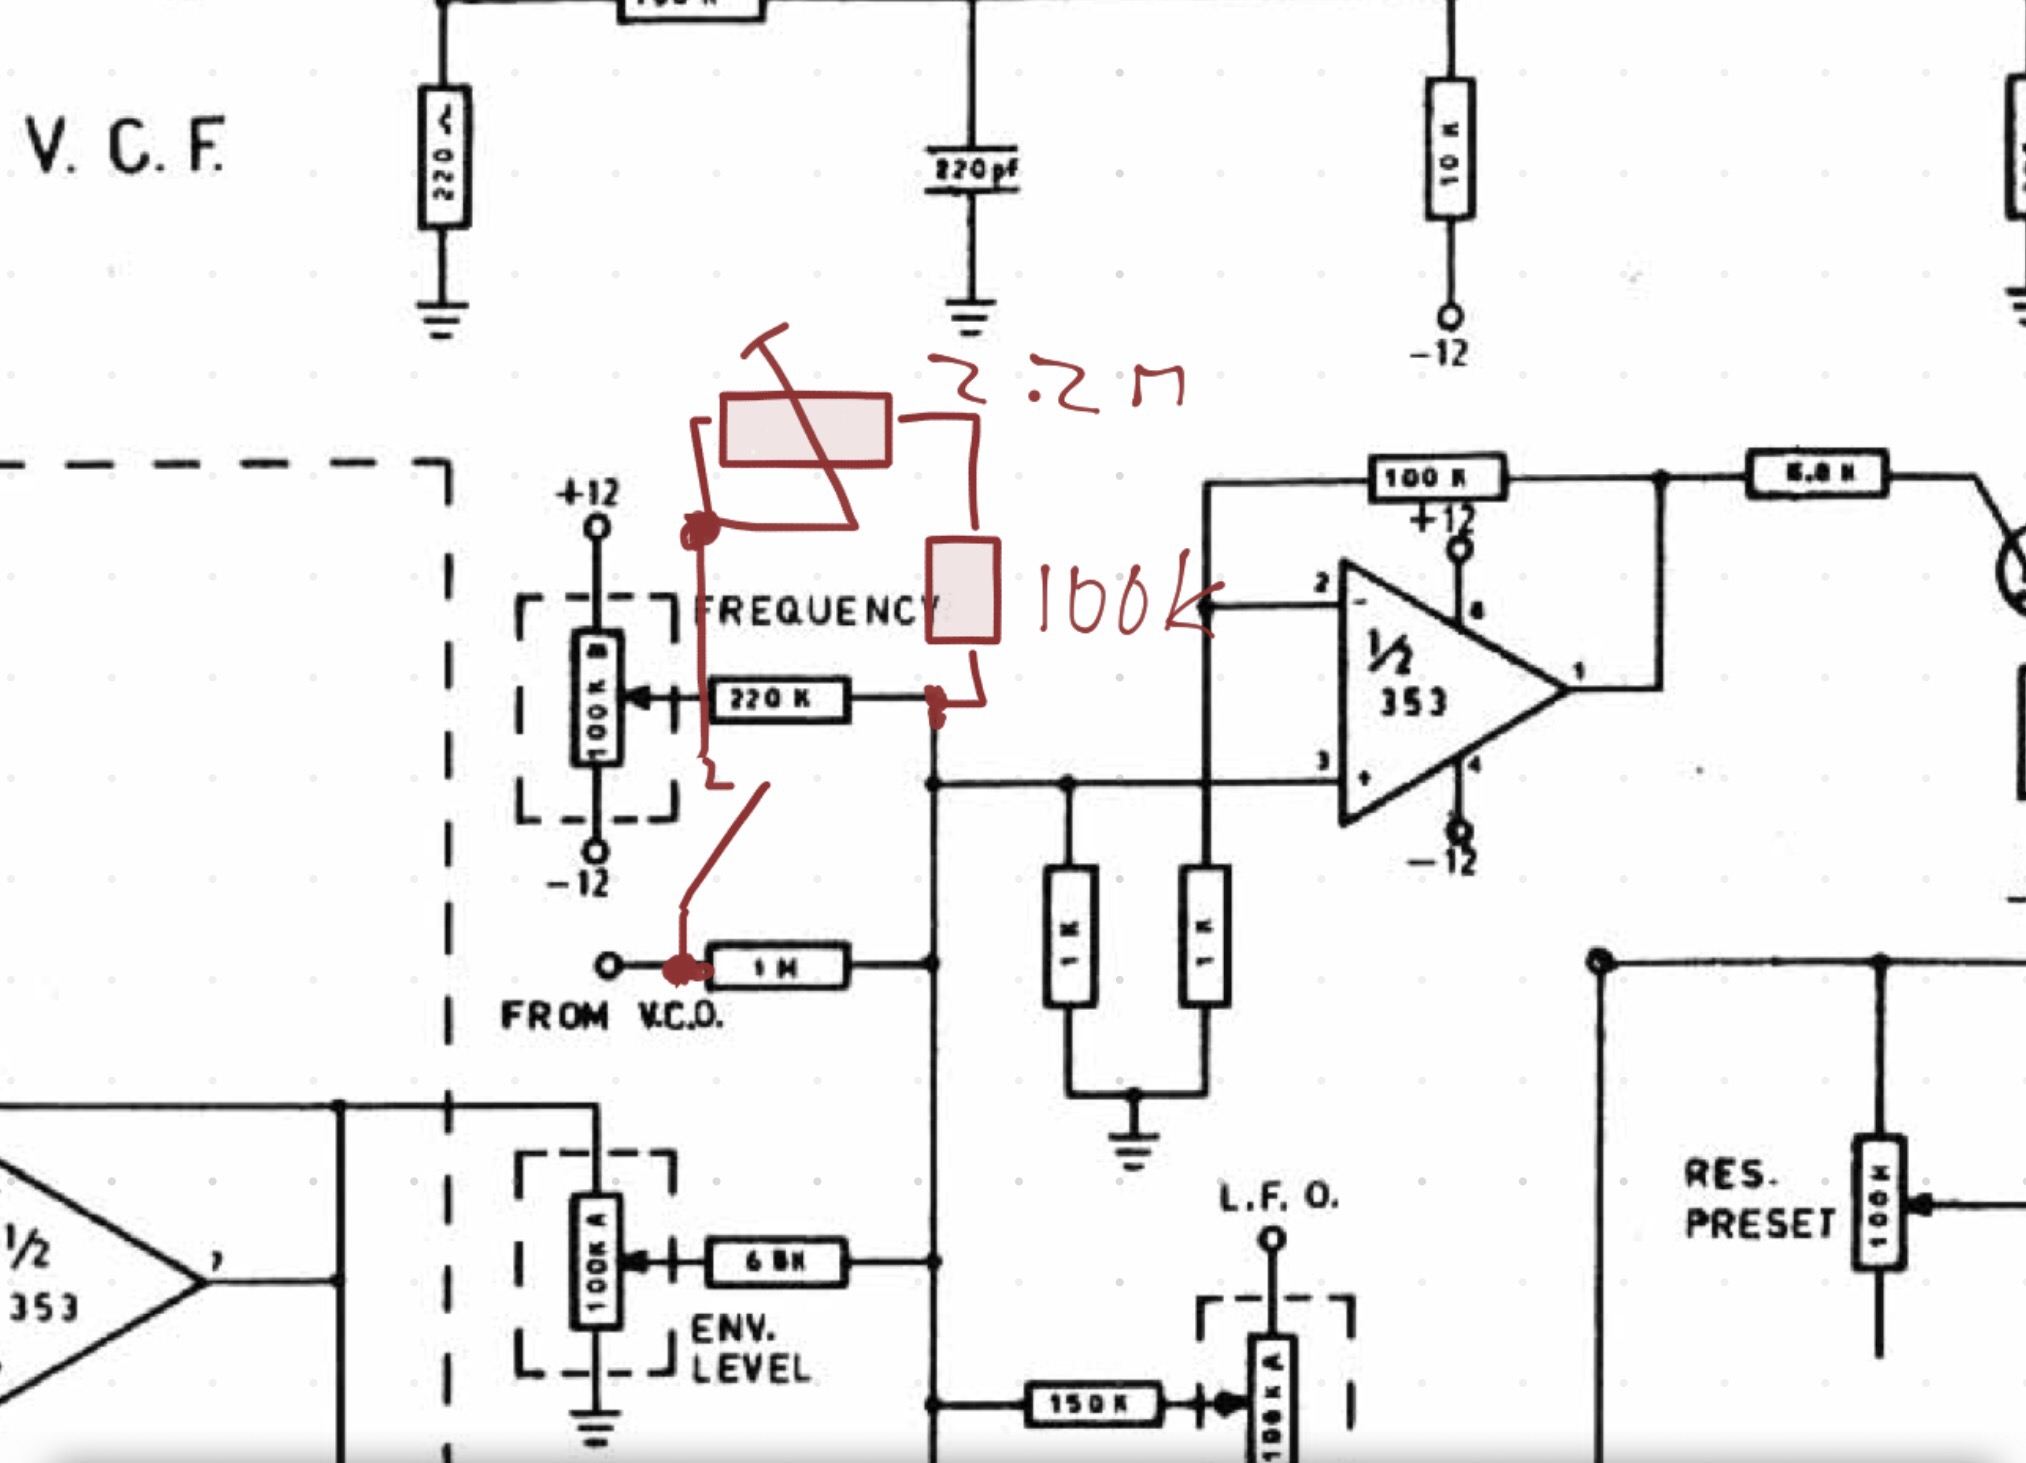 Excerpt of the JEN SX-1000 schematic